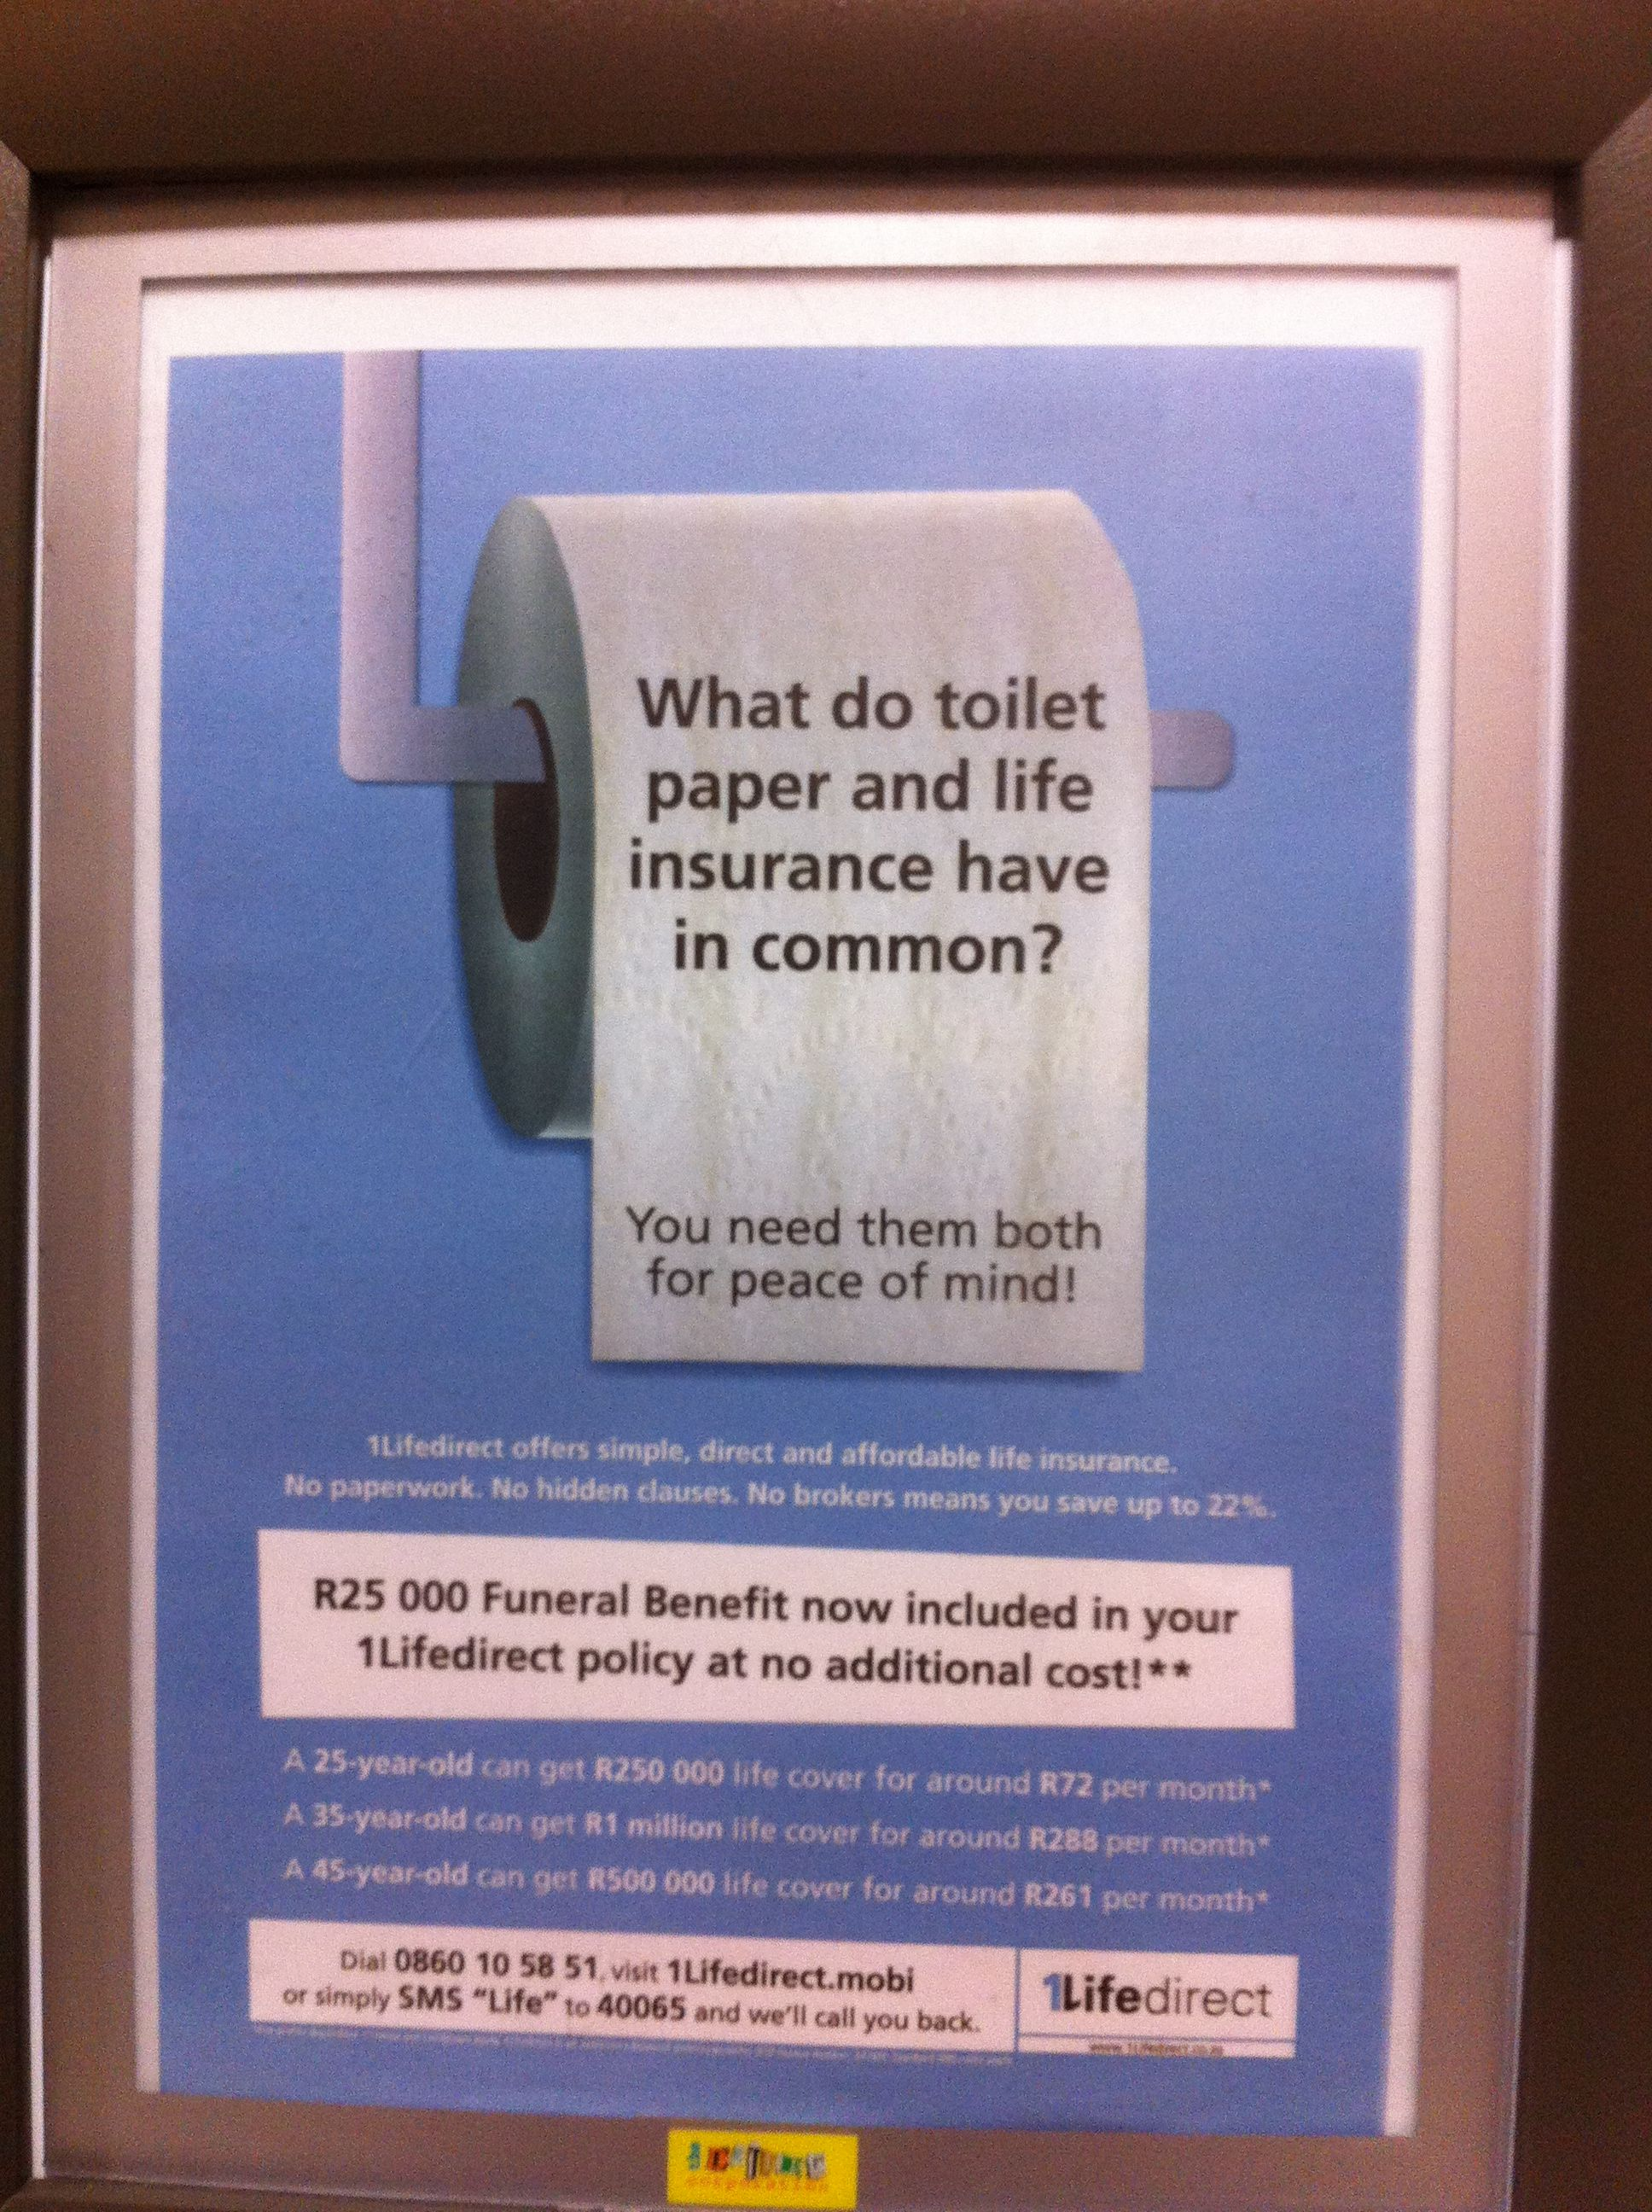 Not Sure The Comparison Between Toilet Paper And Life Insurance Is